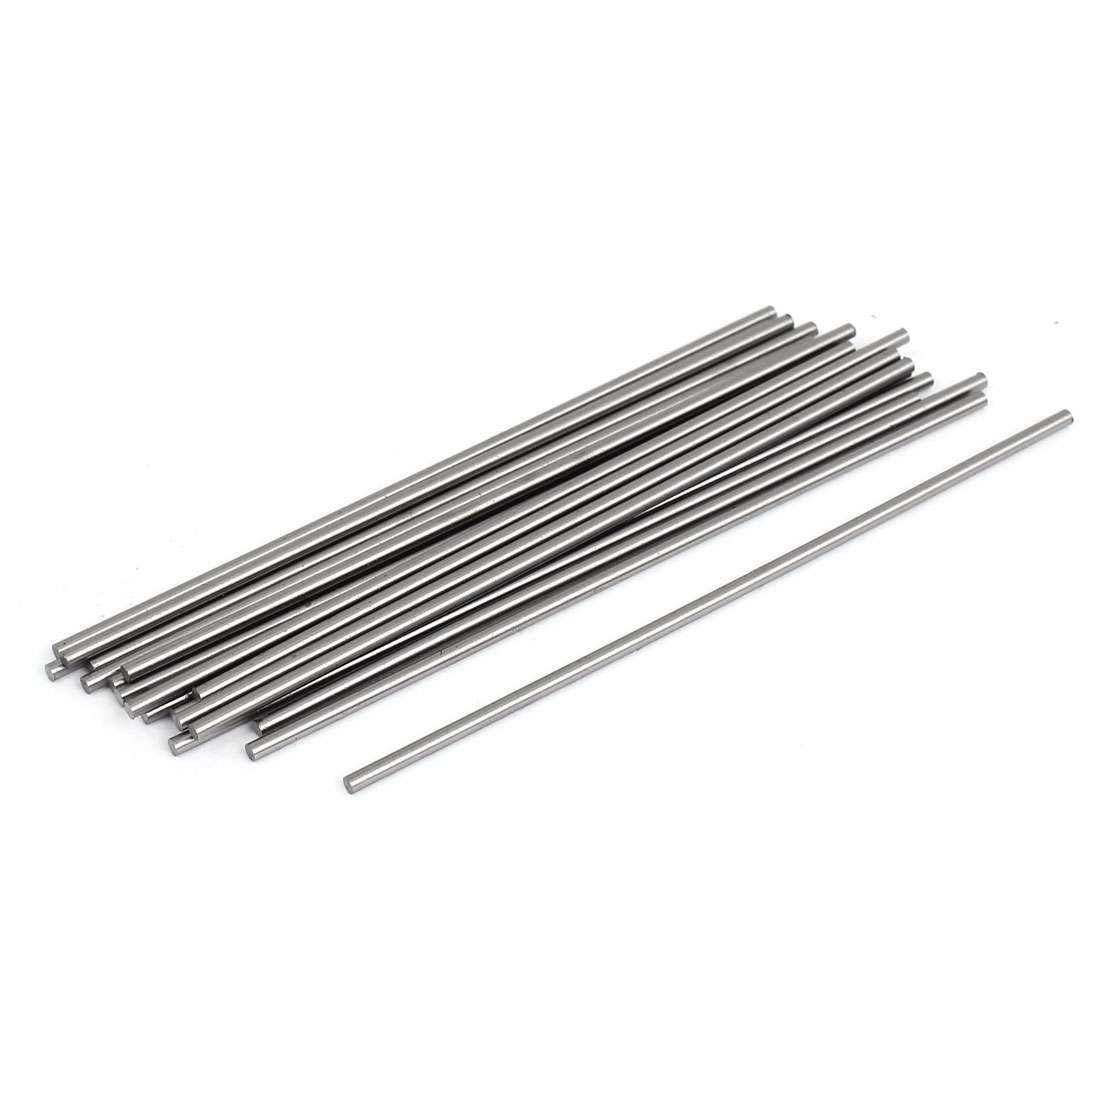 2mmx100mm Machine Grooving Tool Steel Lathe Bar Rods Silver Tone 20 Pcs